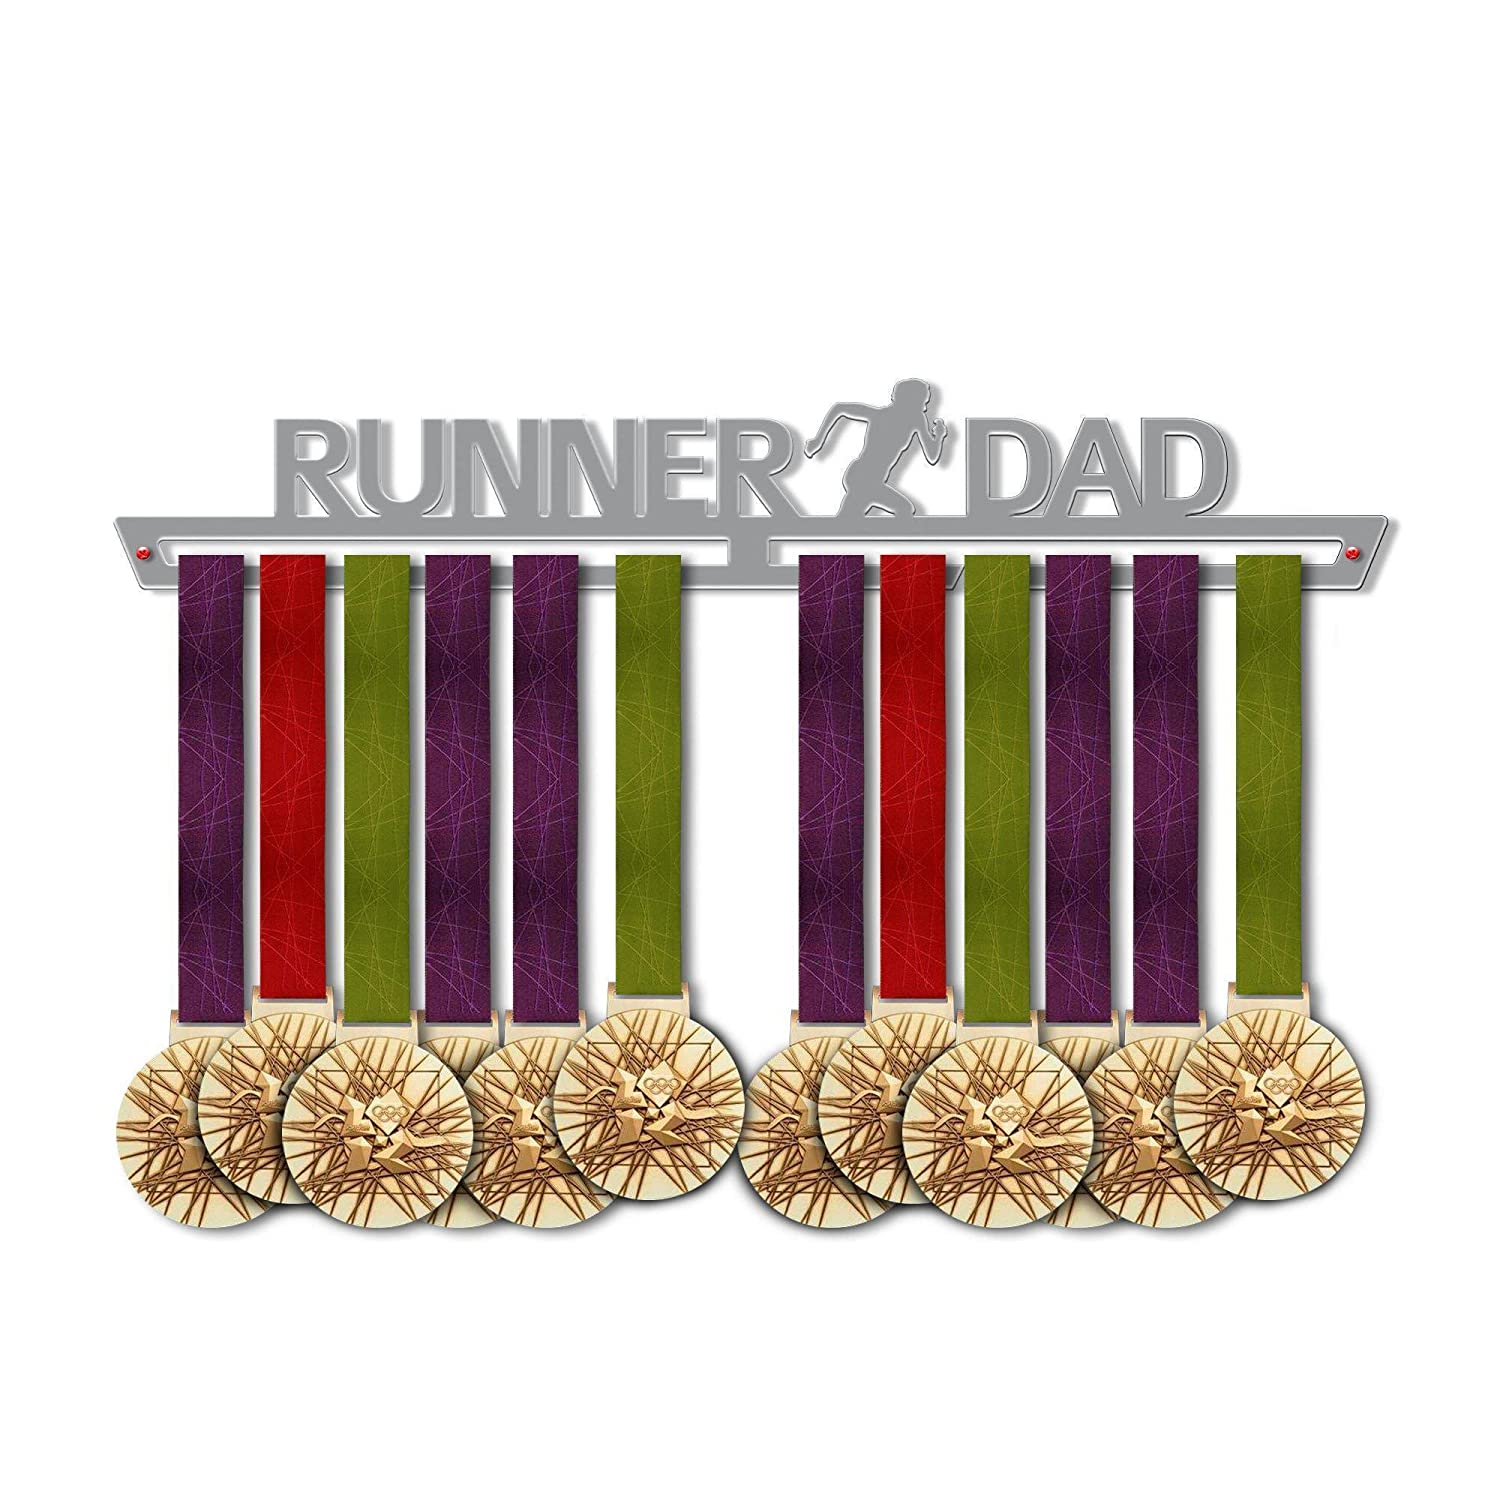 Victory Hangers Dad 's Medals – ランナーDadメダルハンガー – Runningメダルホルダーfor Dads – Running Dad Gift Idea – Heroes Dads Running Medal表示 B07FCQVVH7